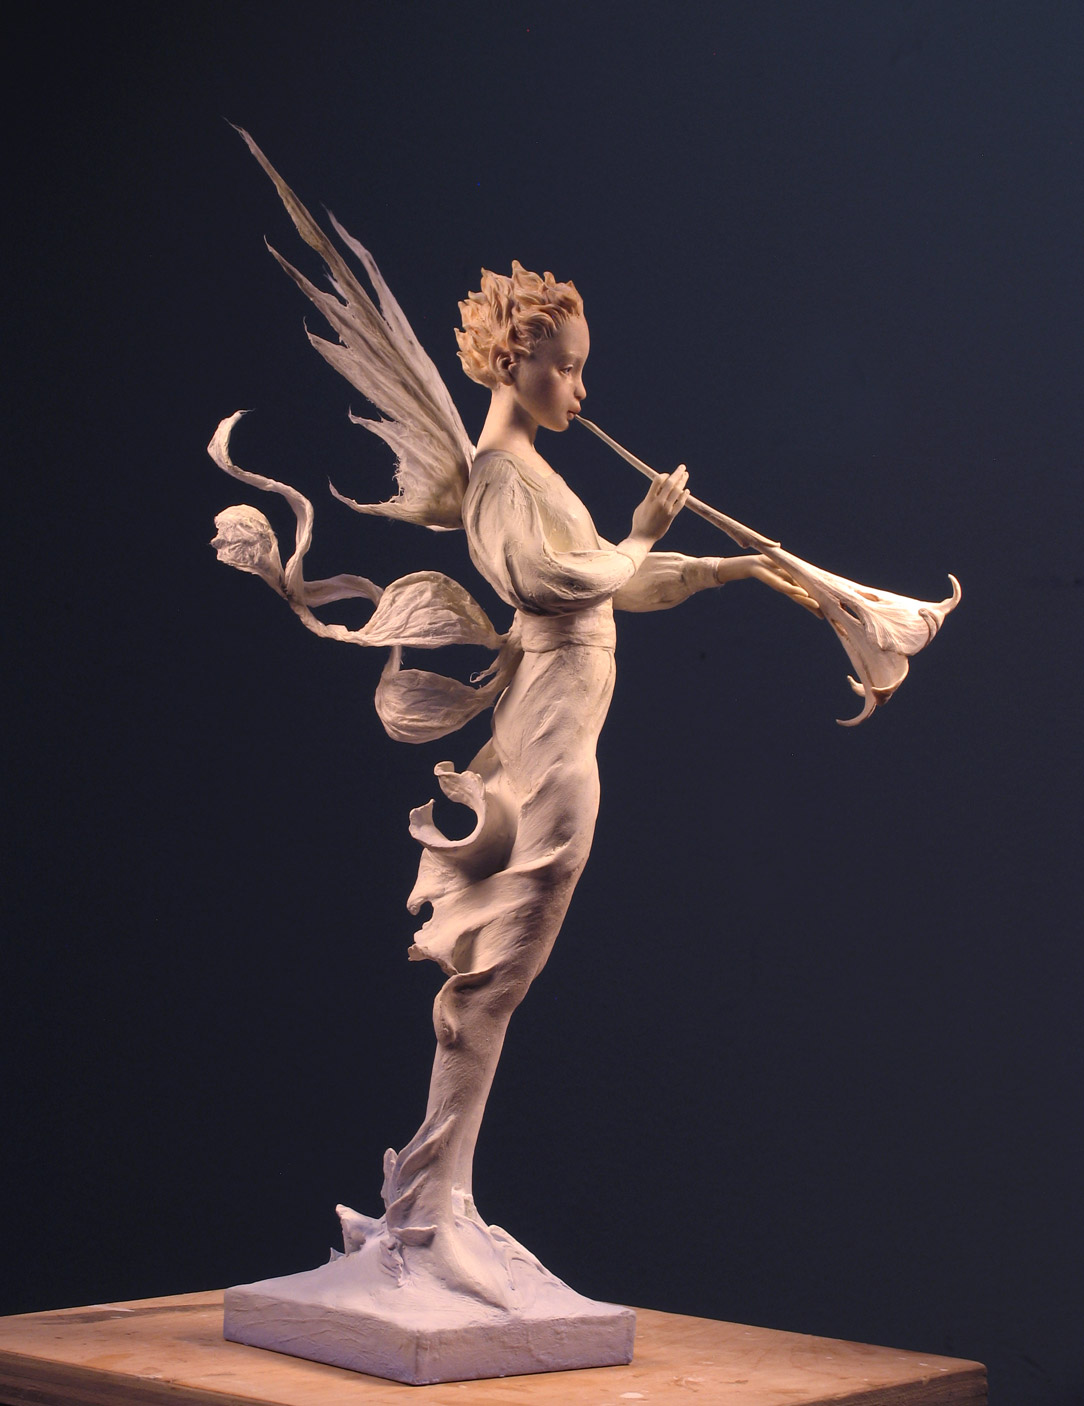 In Premier air-dry clay, with Kato Polyclay and washi paper. About 15.5 inches tall.